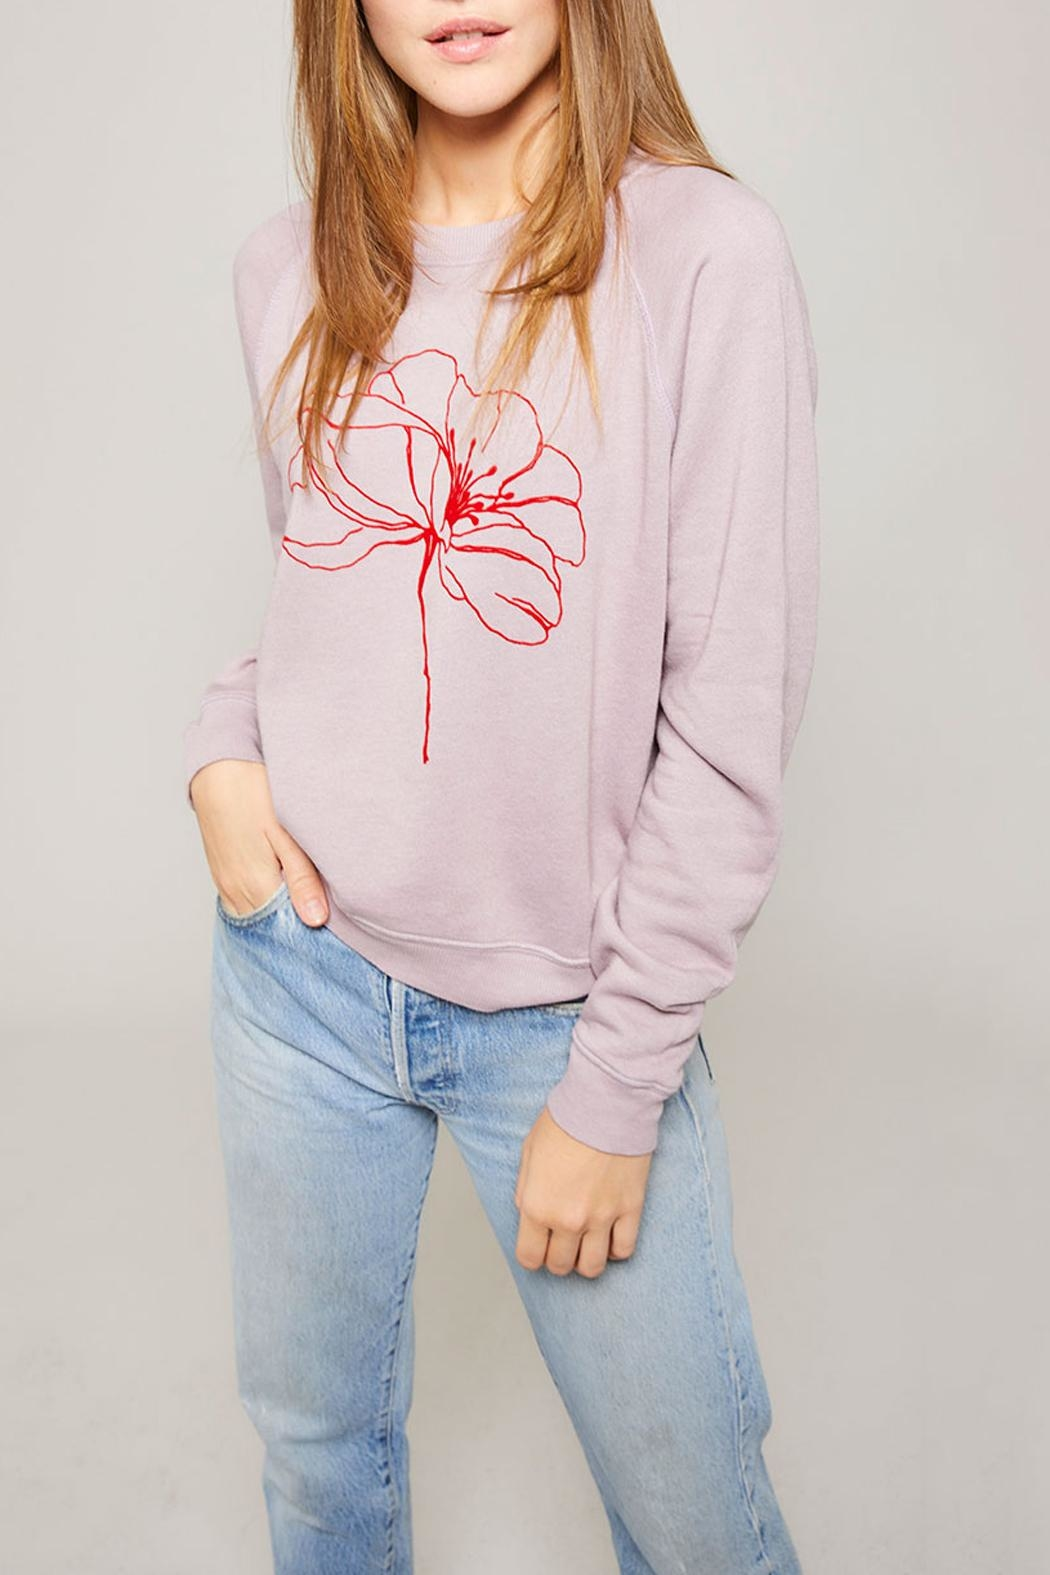 All Things Fabulous Poppy Favorite Sweatshirt - Front Cropped Image